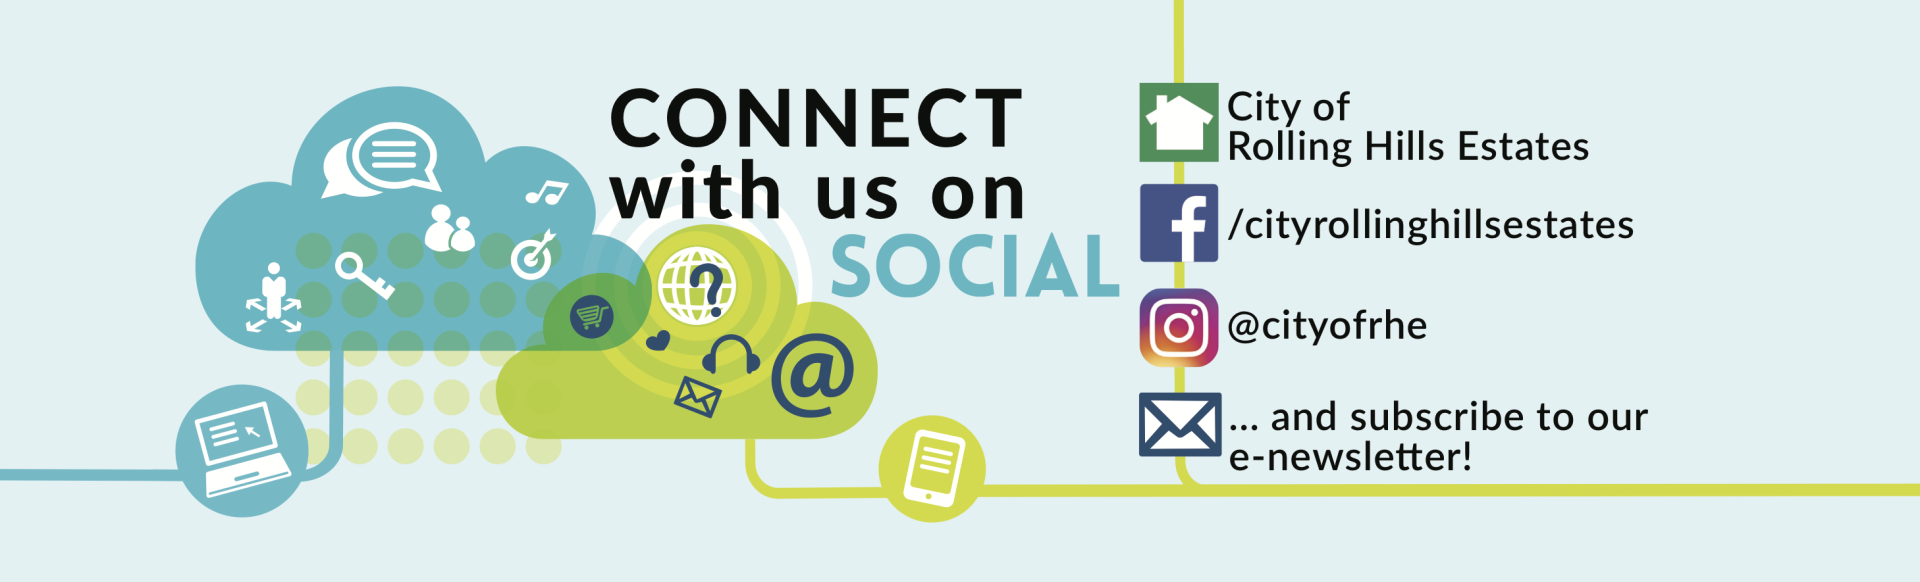 Connect With Us On Social